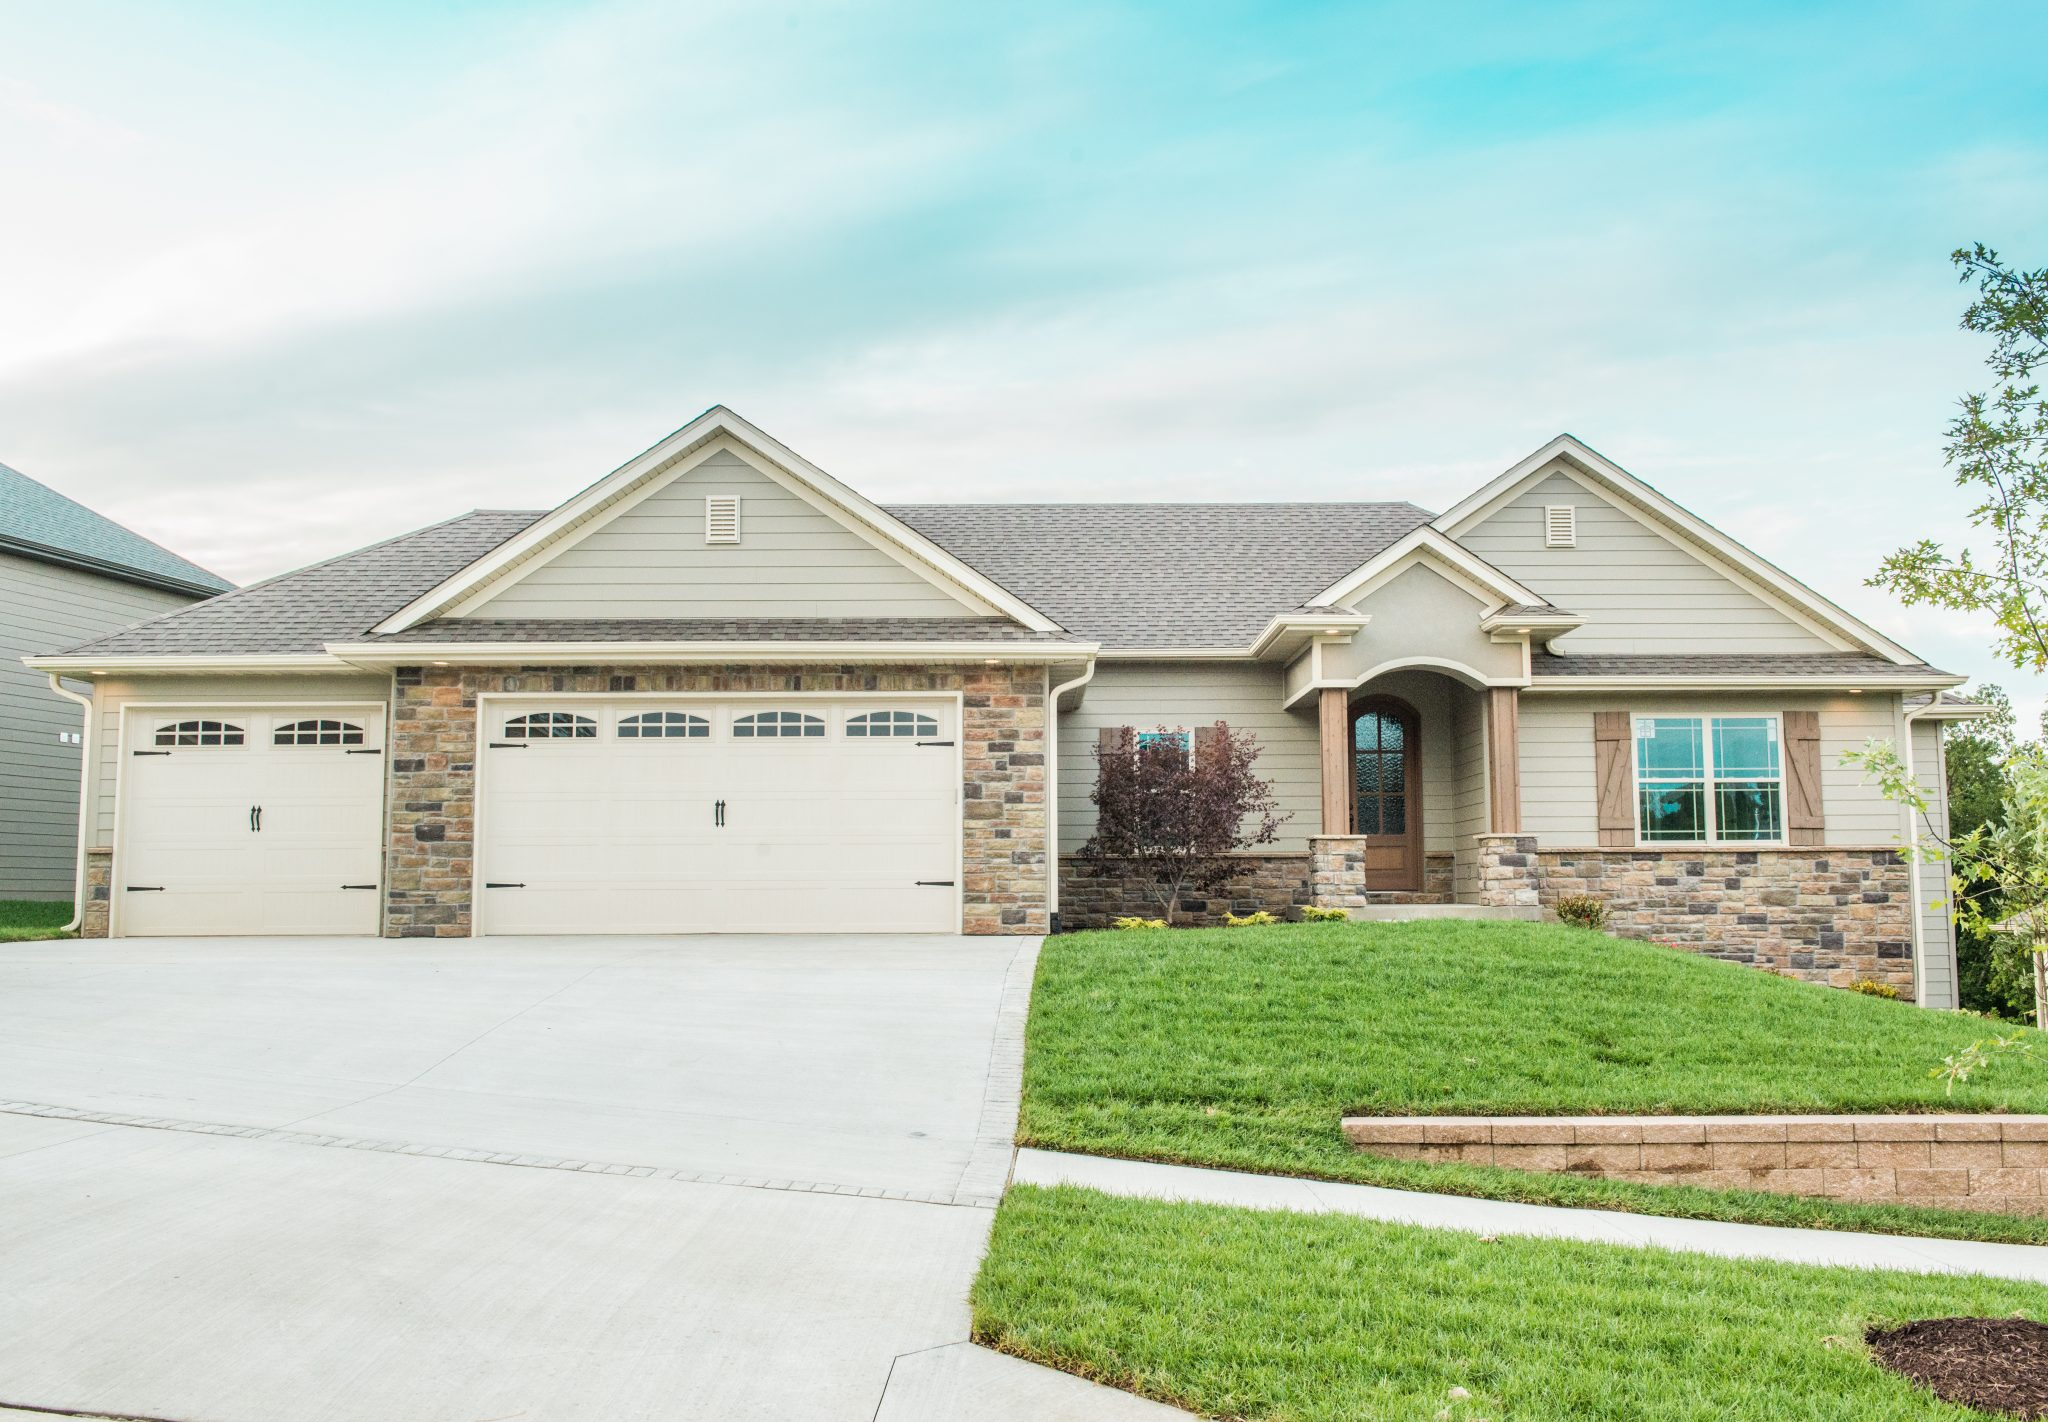 Custom Home Floor Plans and Builder in Columbia, Mo